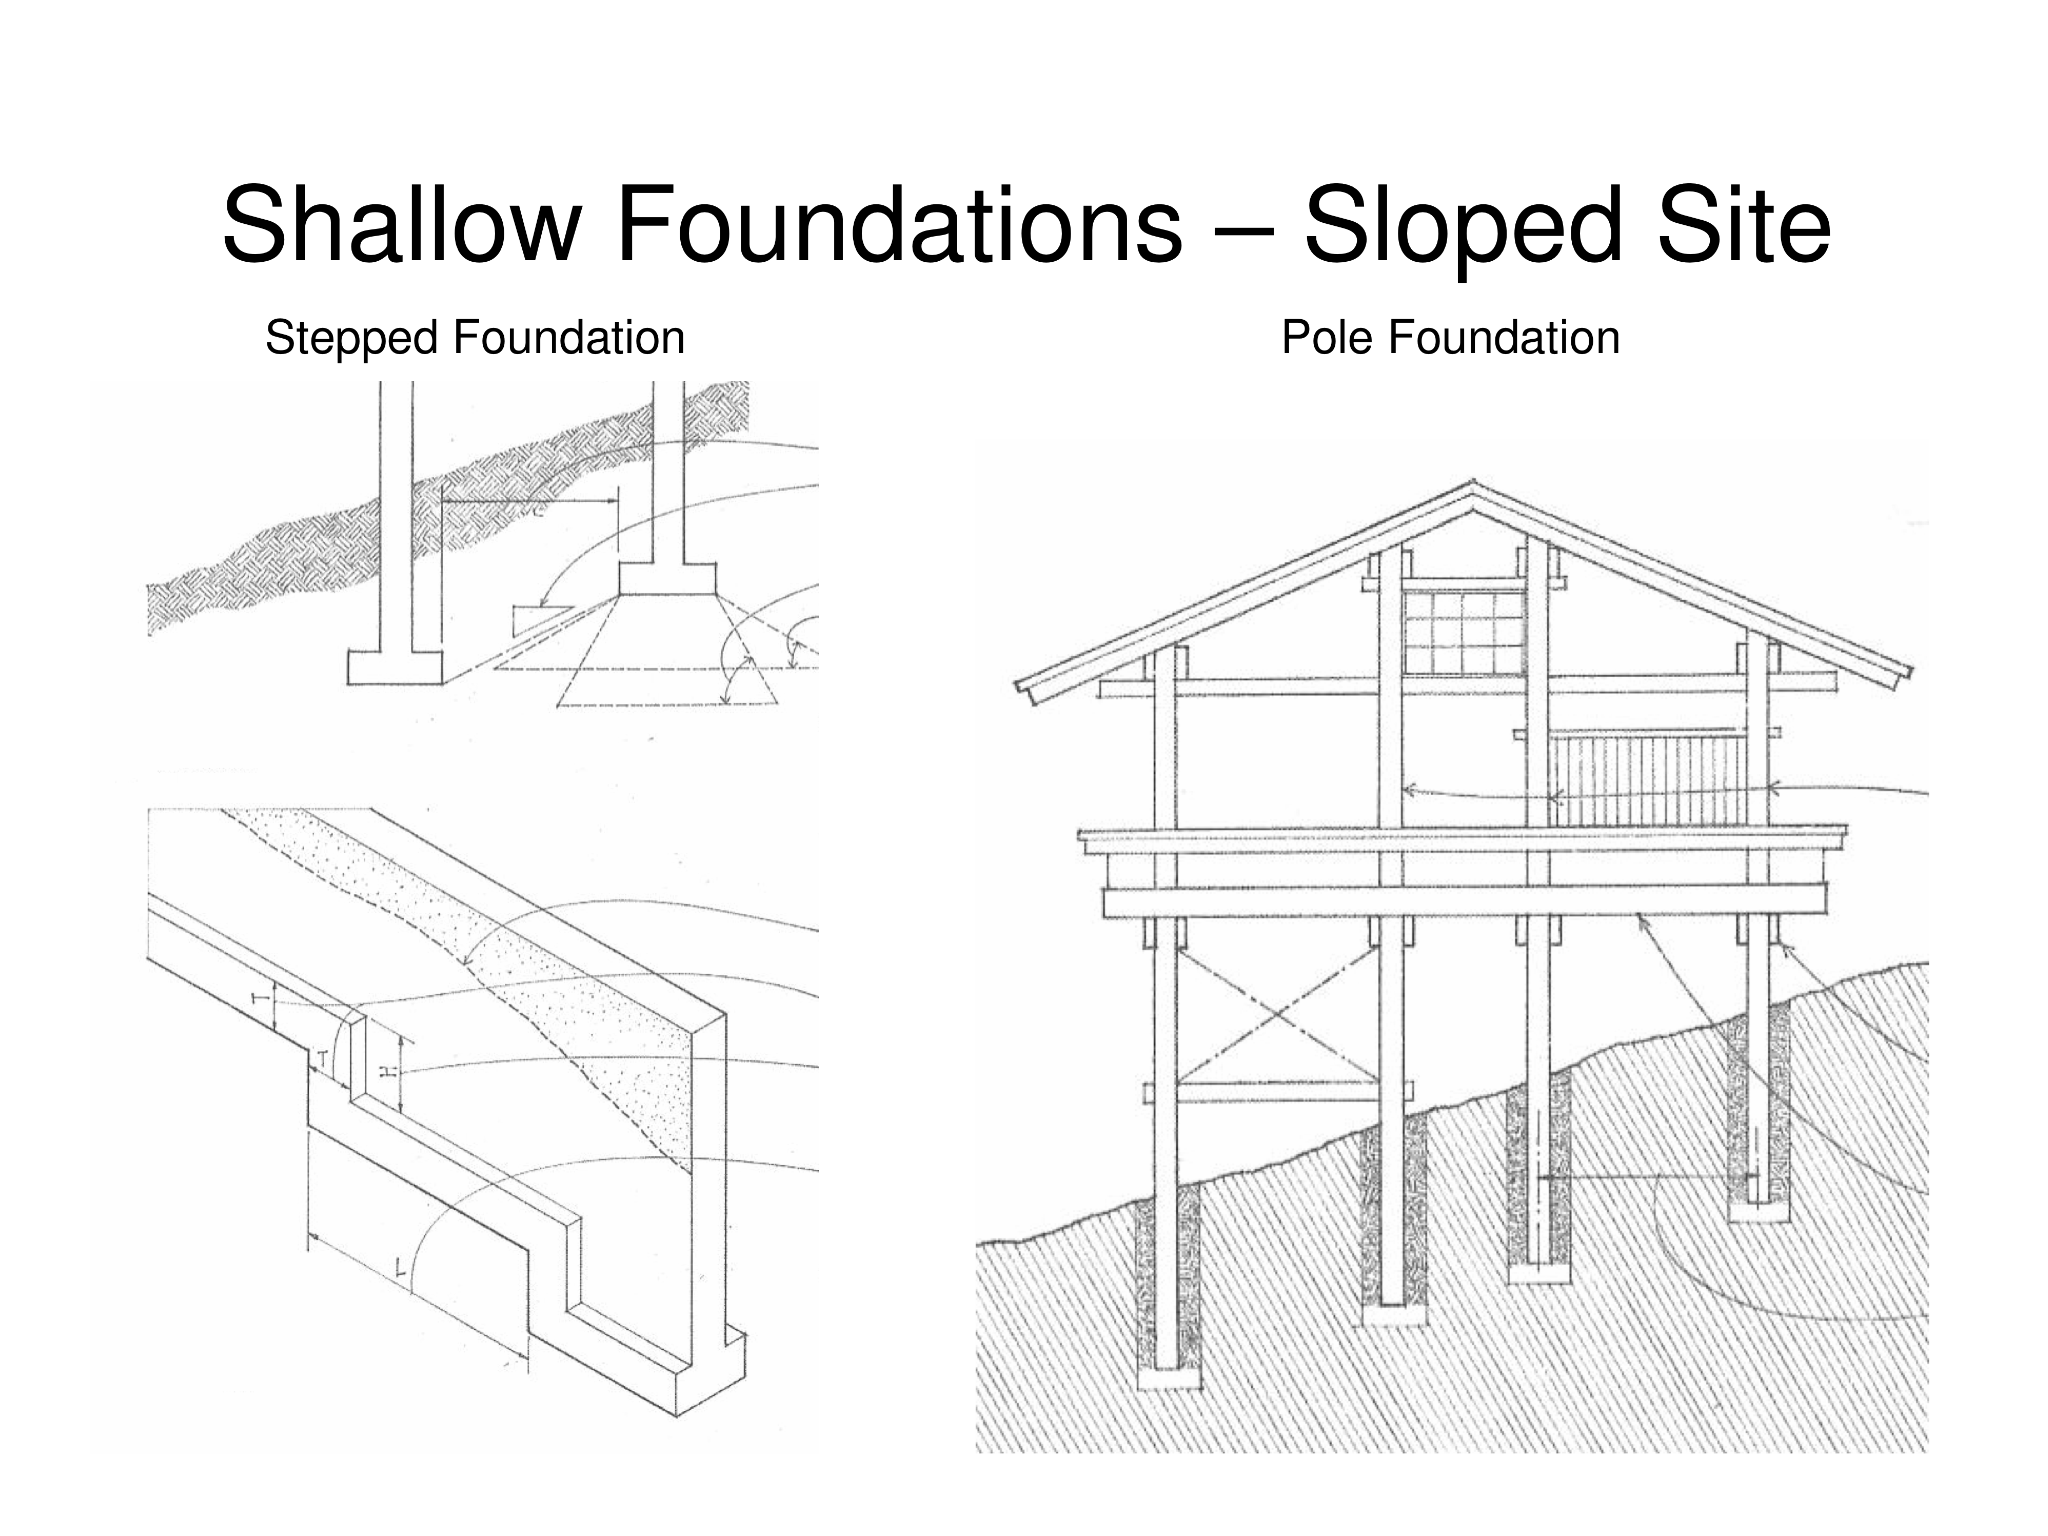 Sloped site foundations - Stepped and Pole | Soils and Foundations ...